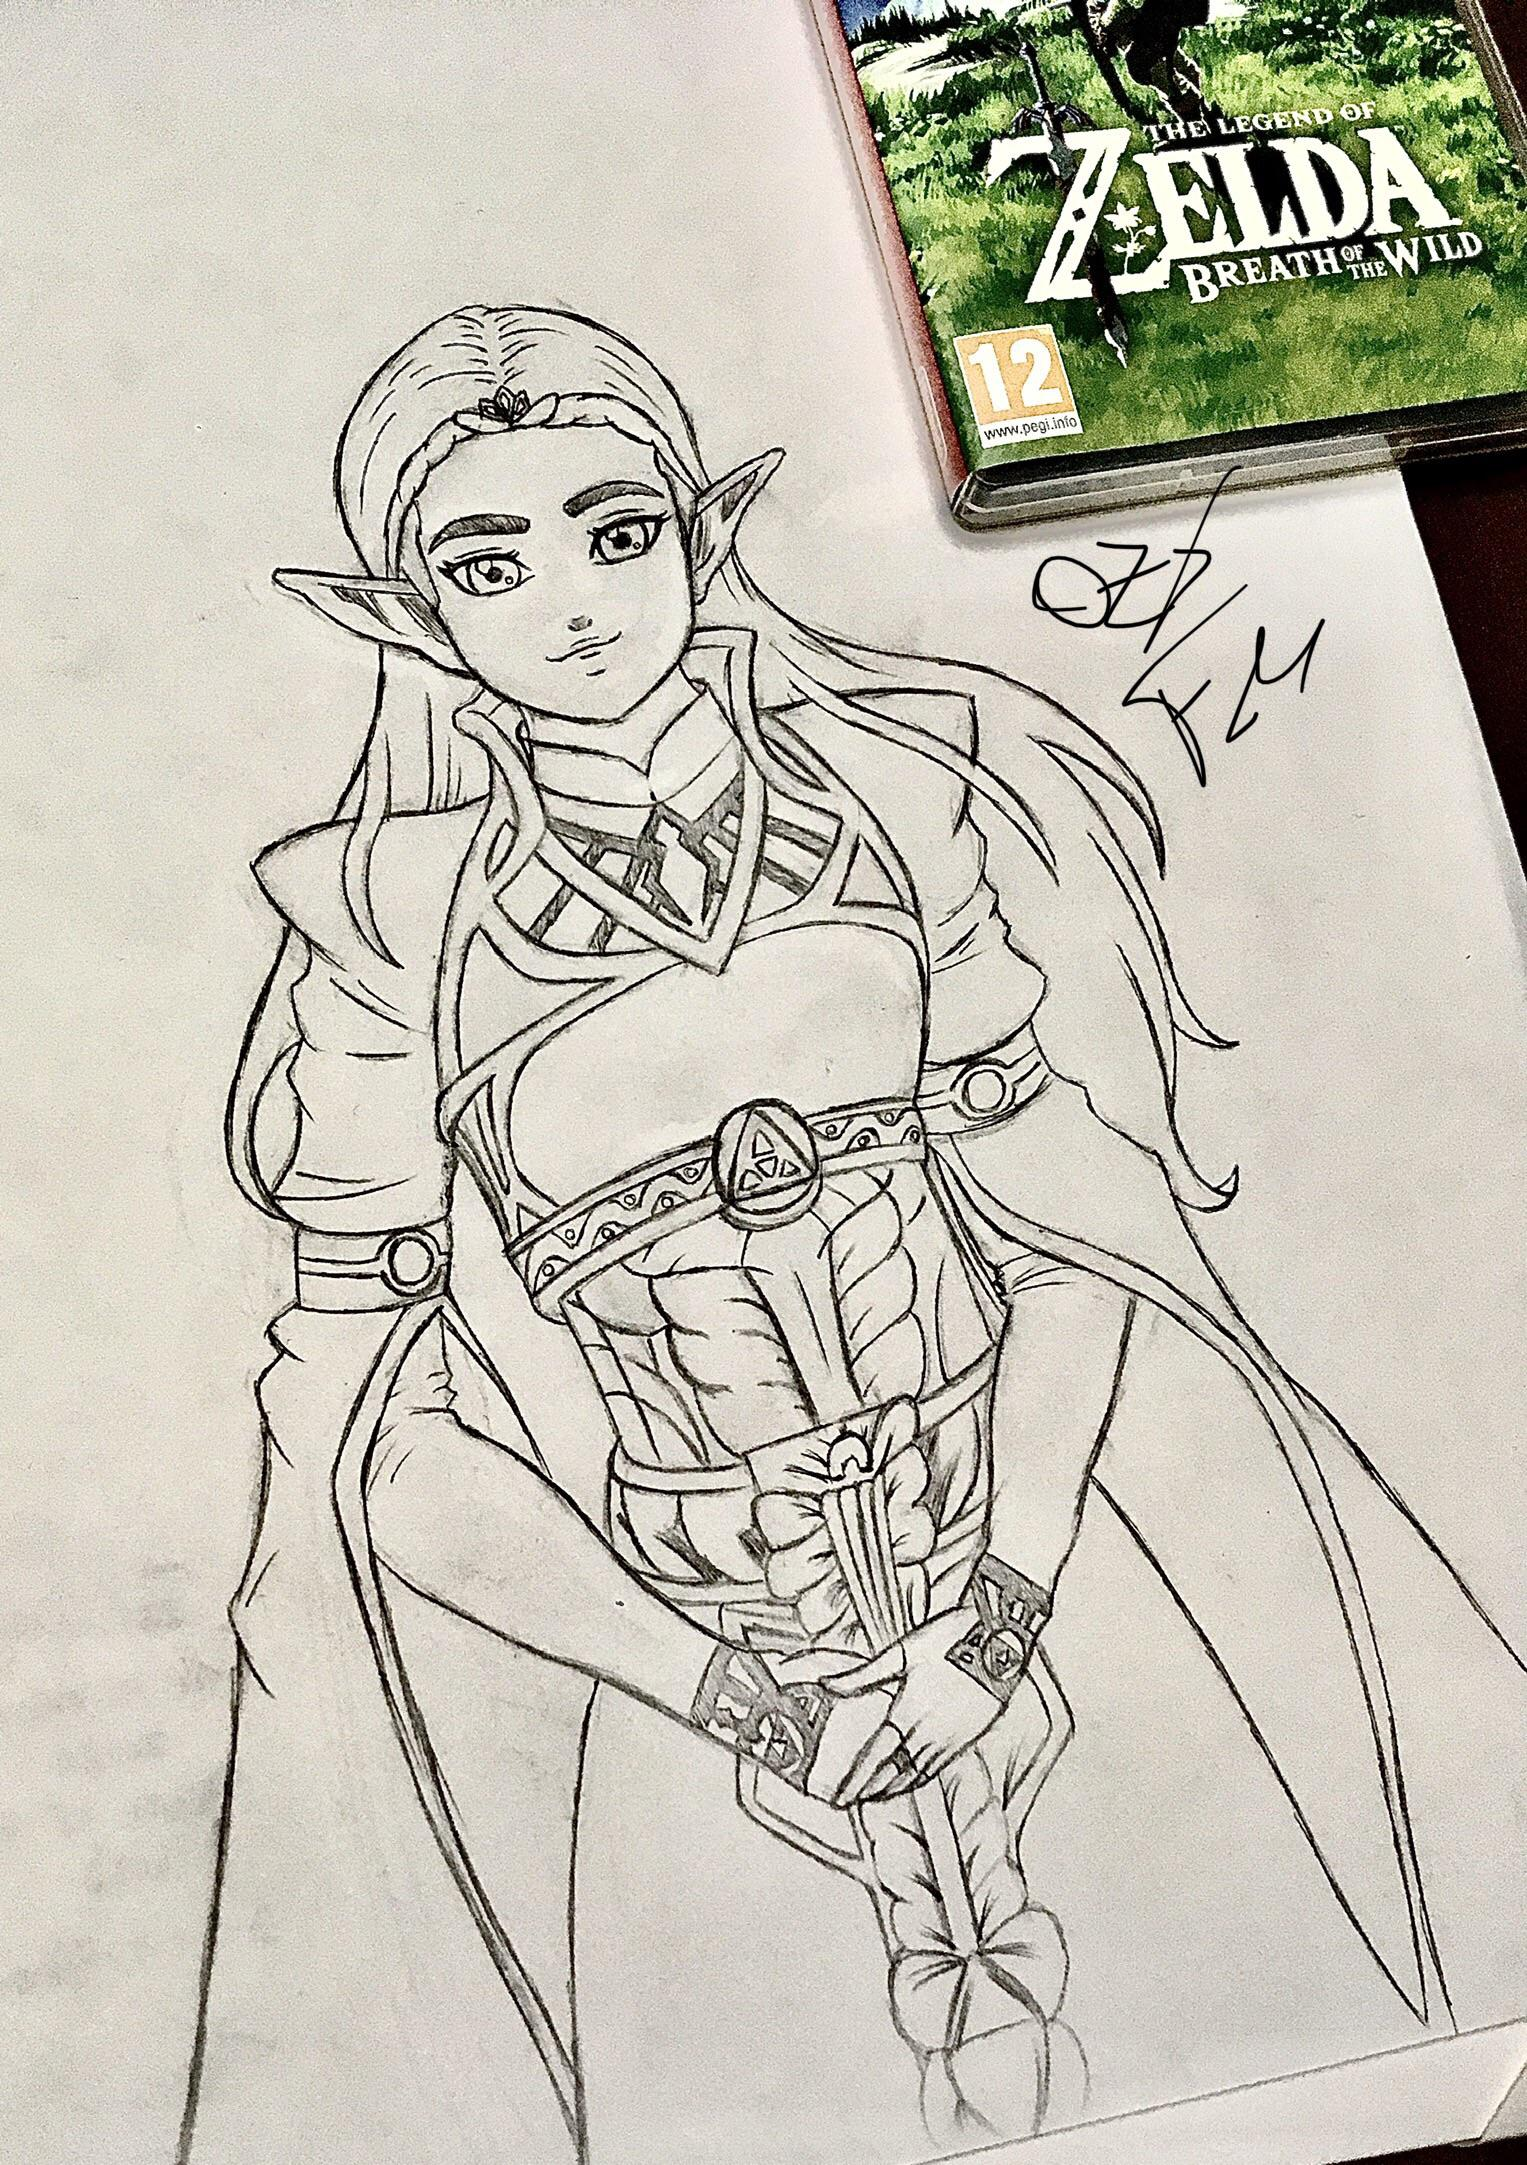 Princess Zelda Drawing : princess, zelda, drawing, BotW], First, Drawing, Princess, Zelda